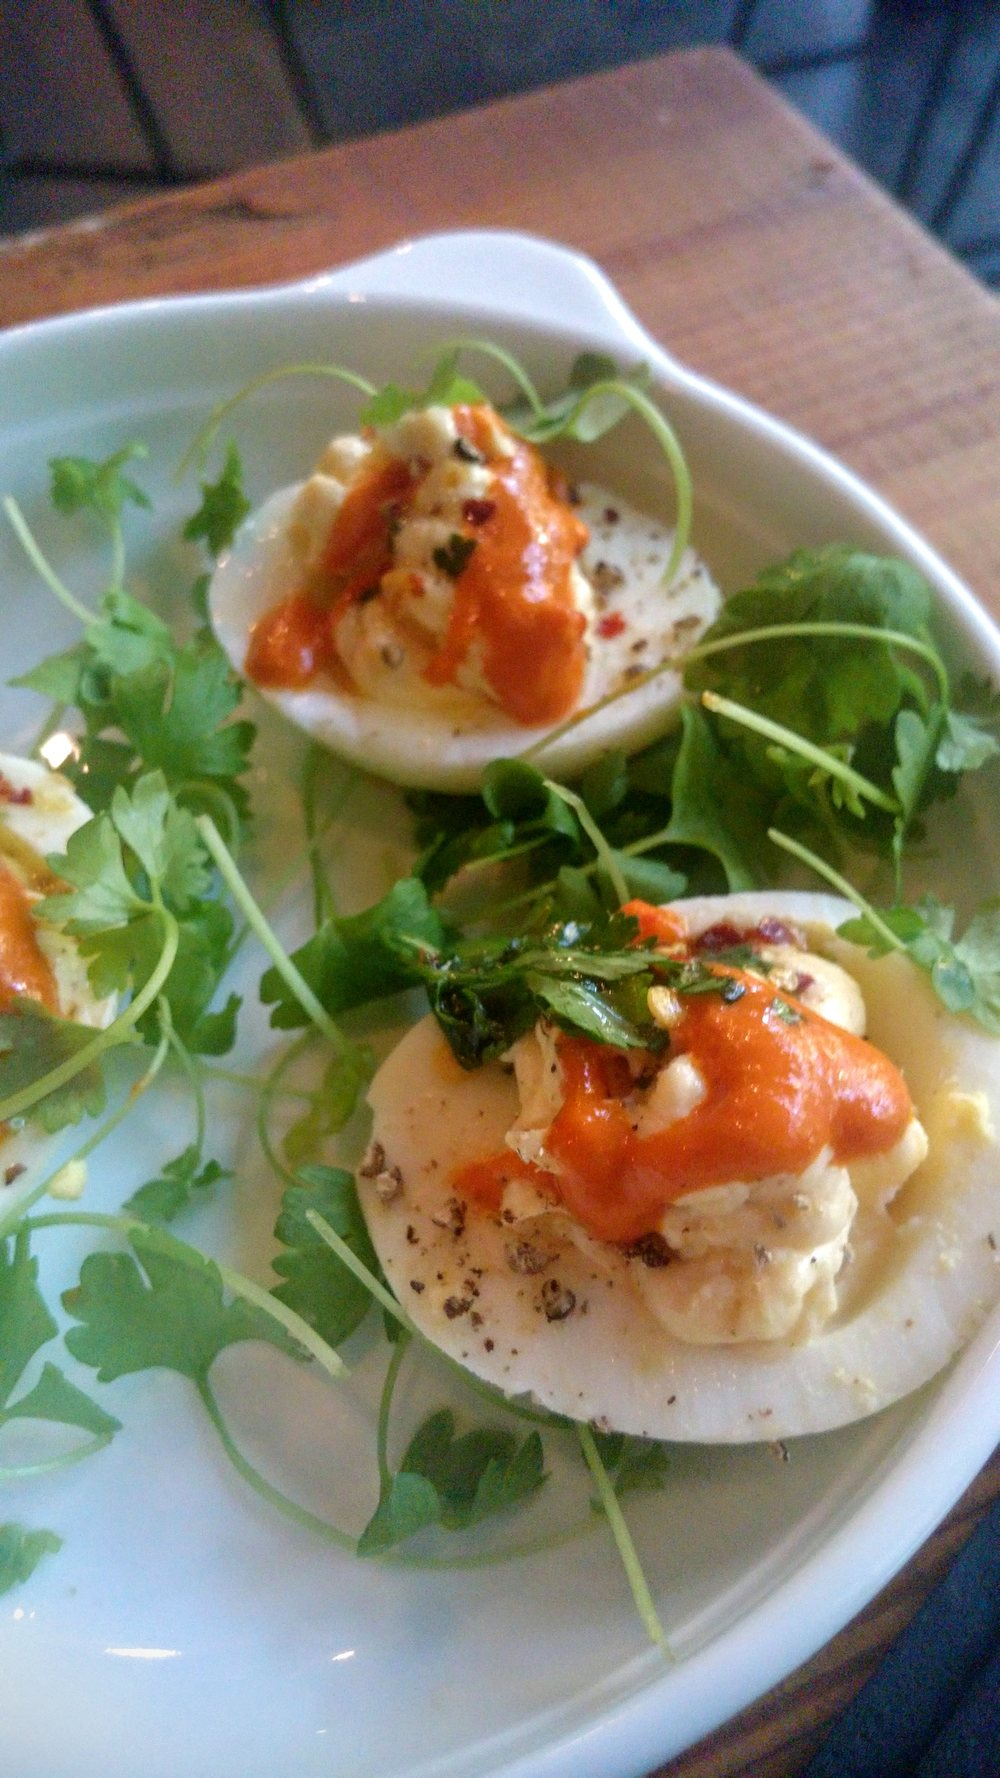 Deviled eggs with sriracha.